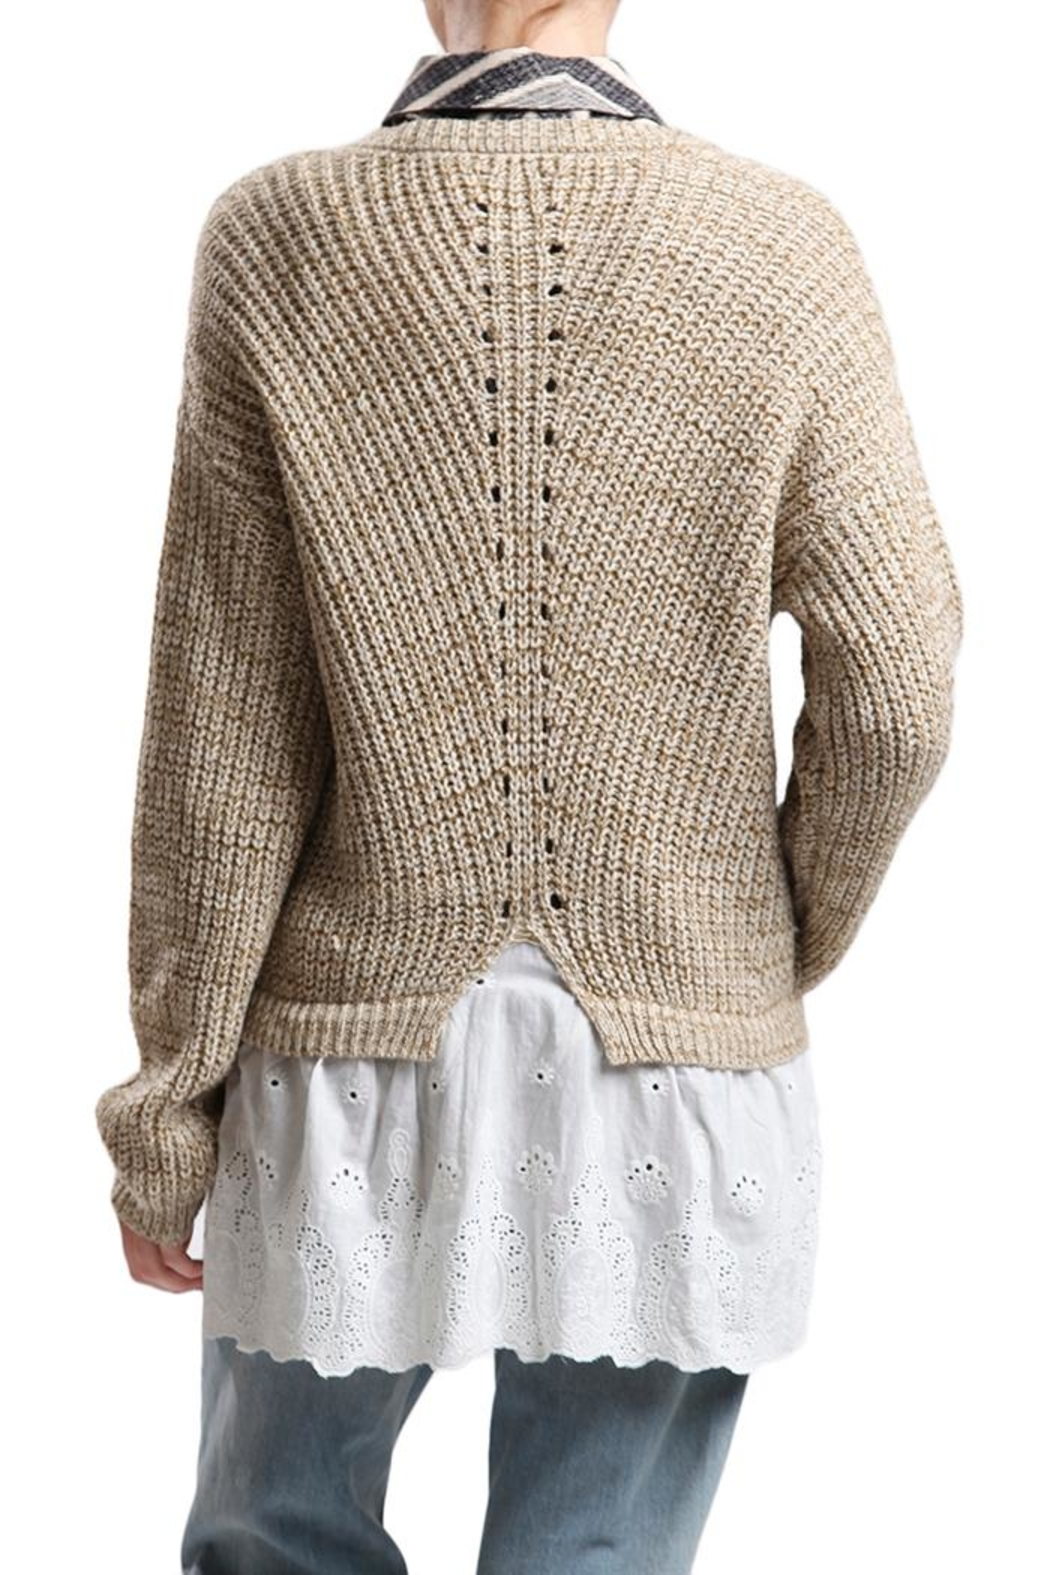 Blu Pepper Lace Bottom Sweater from New Jersey by Making Waves ...